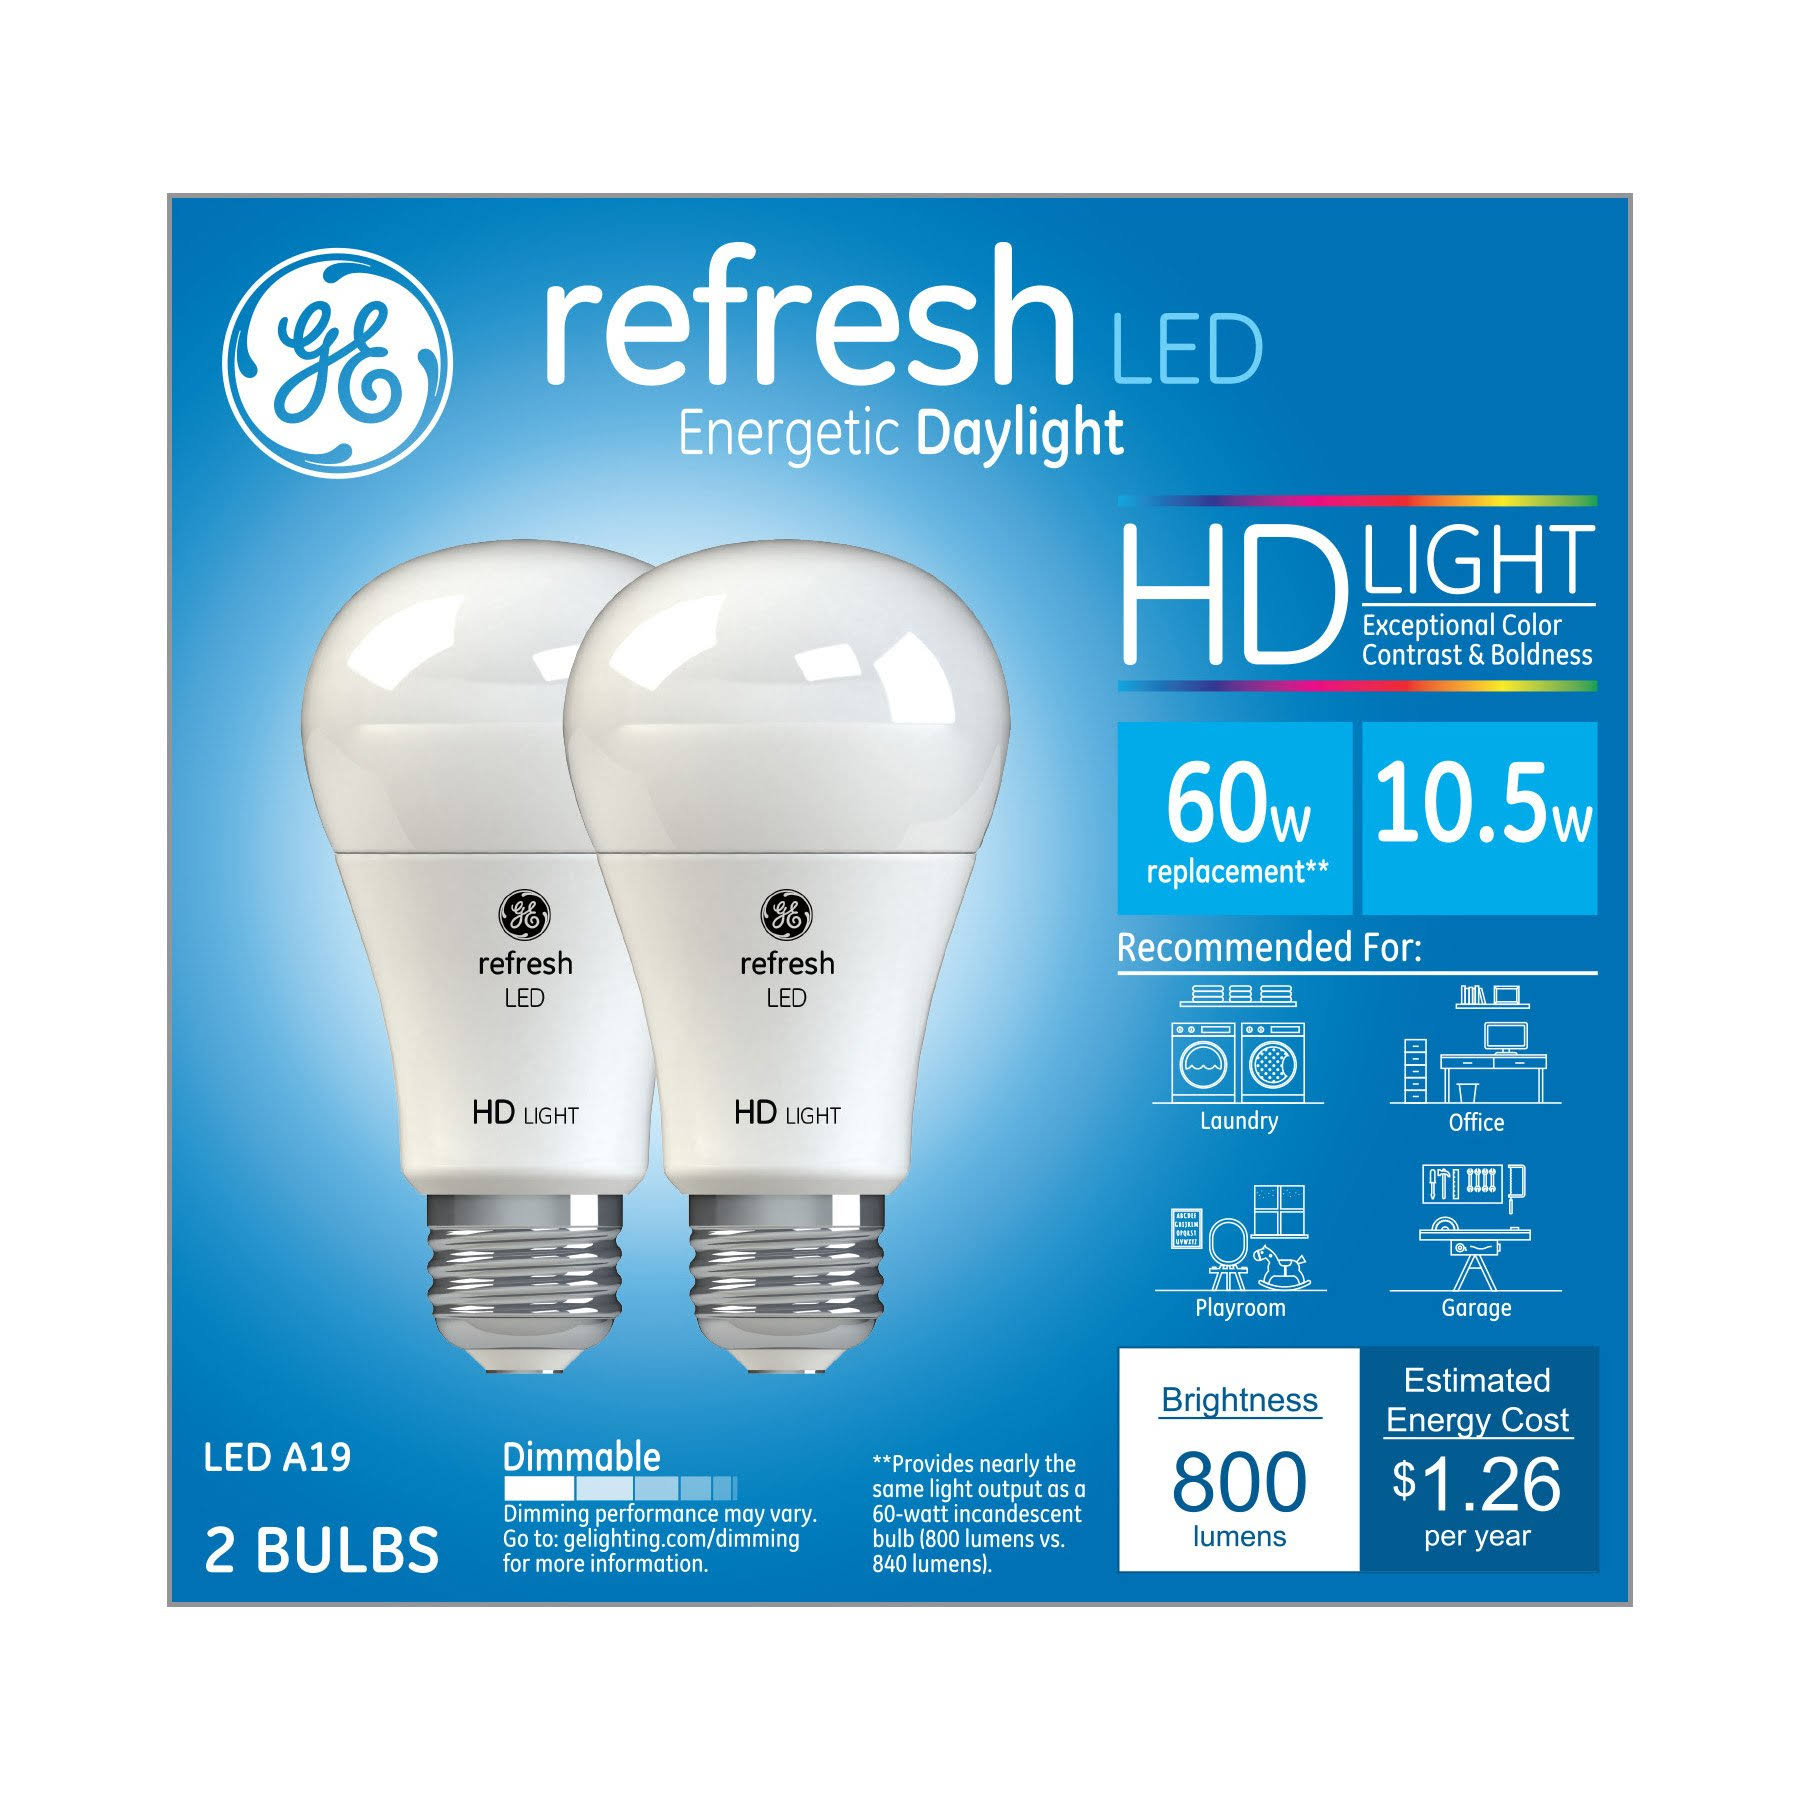 General Electric Refresh LED Energetic Daylight Bulb - 60W